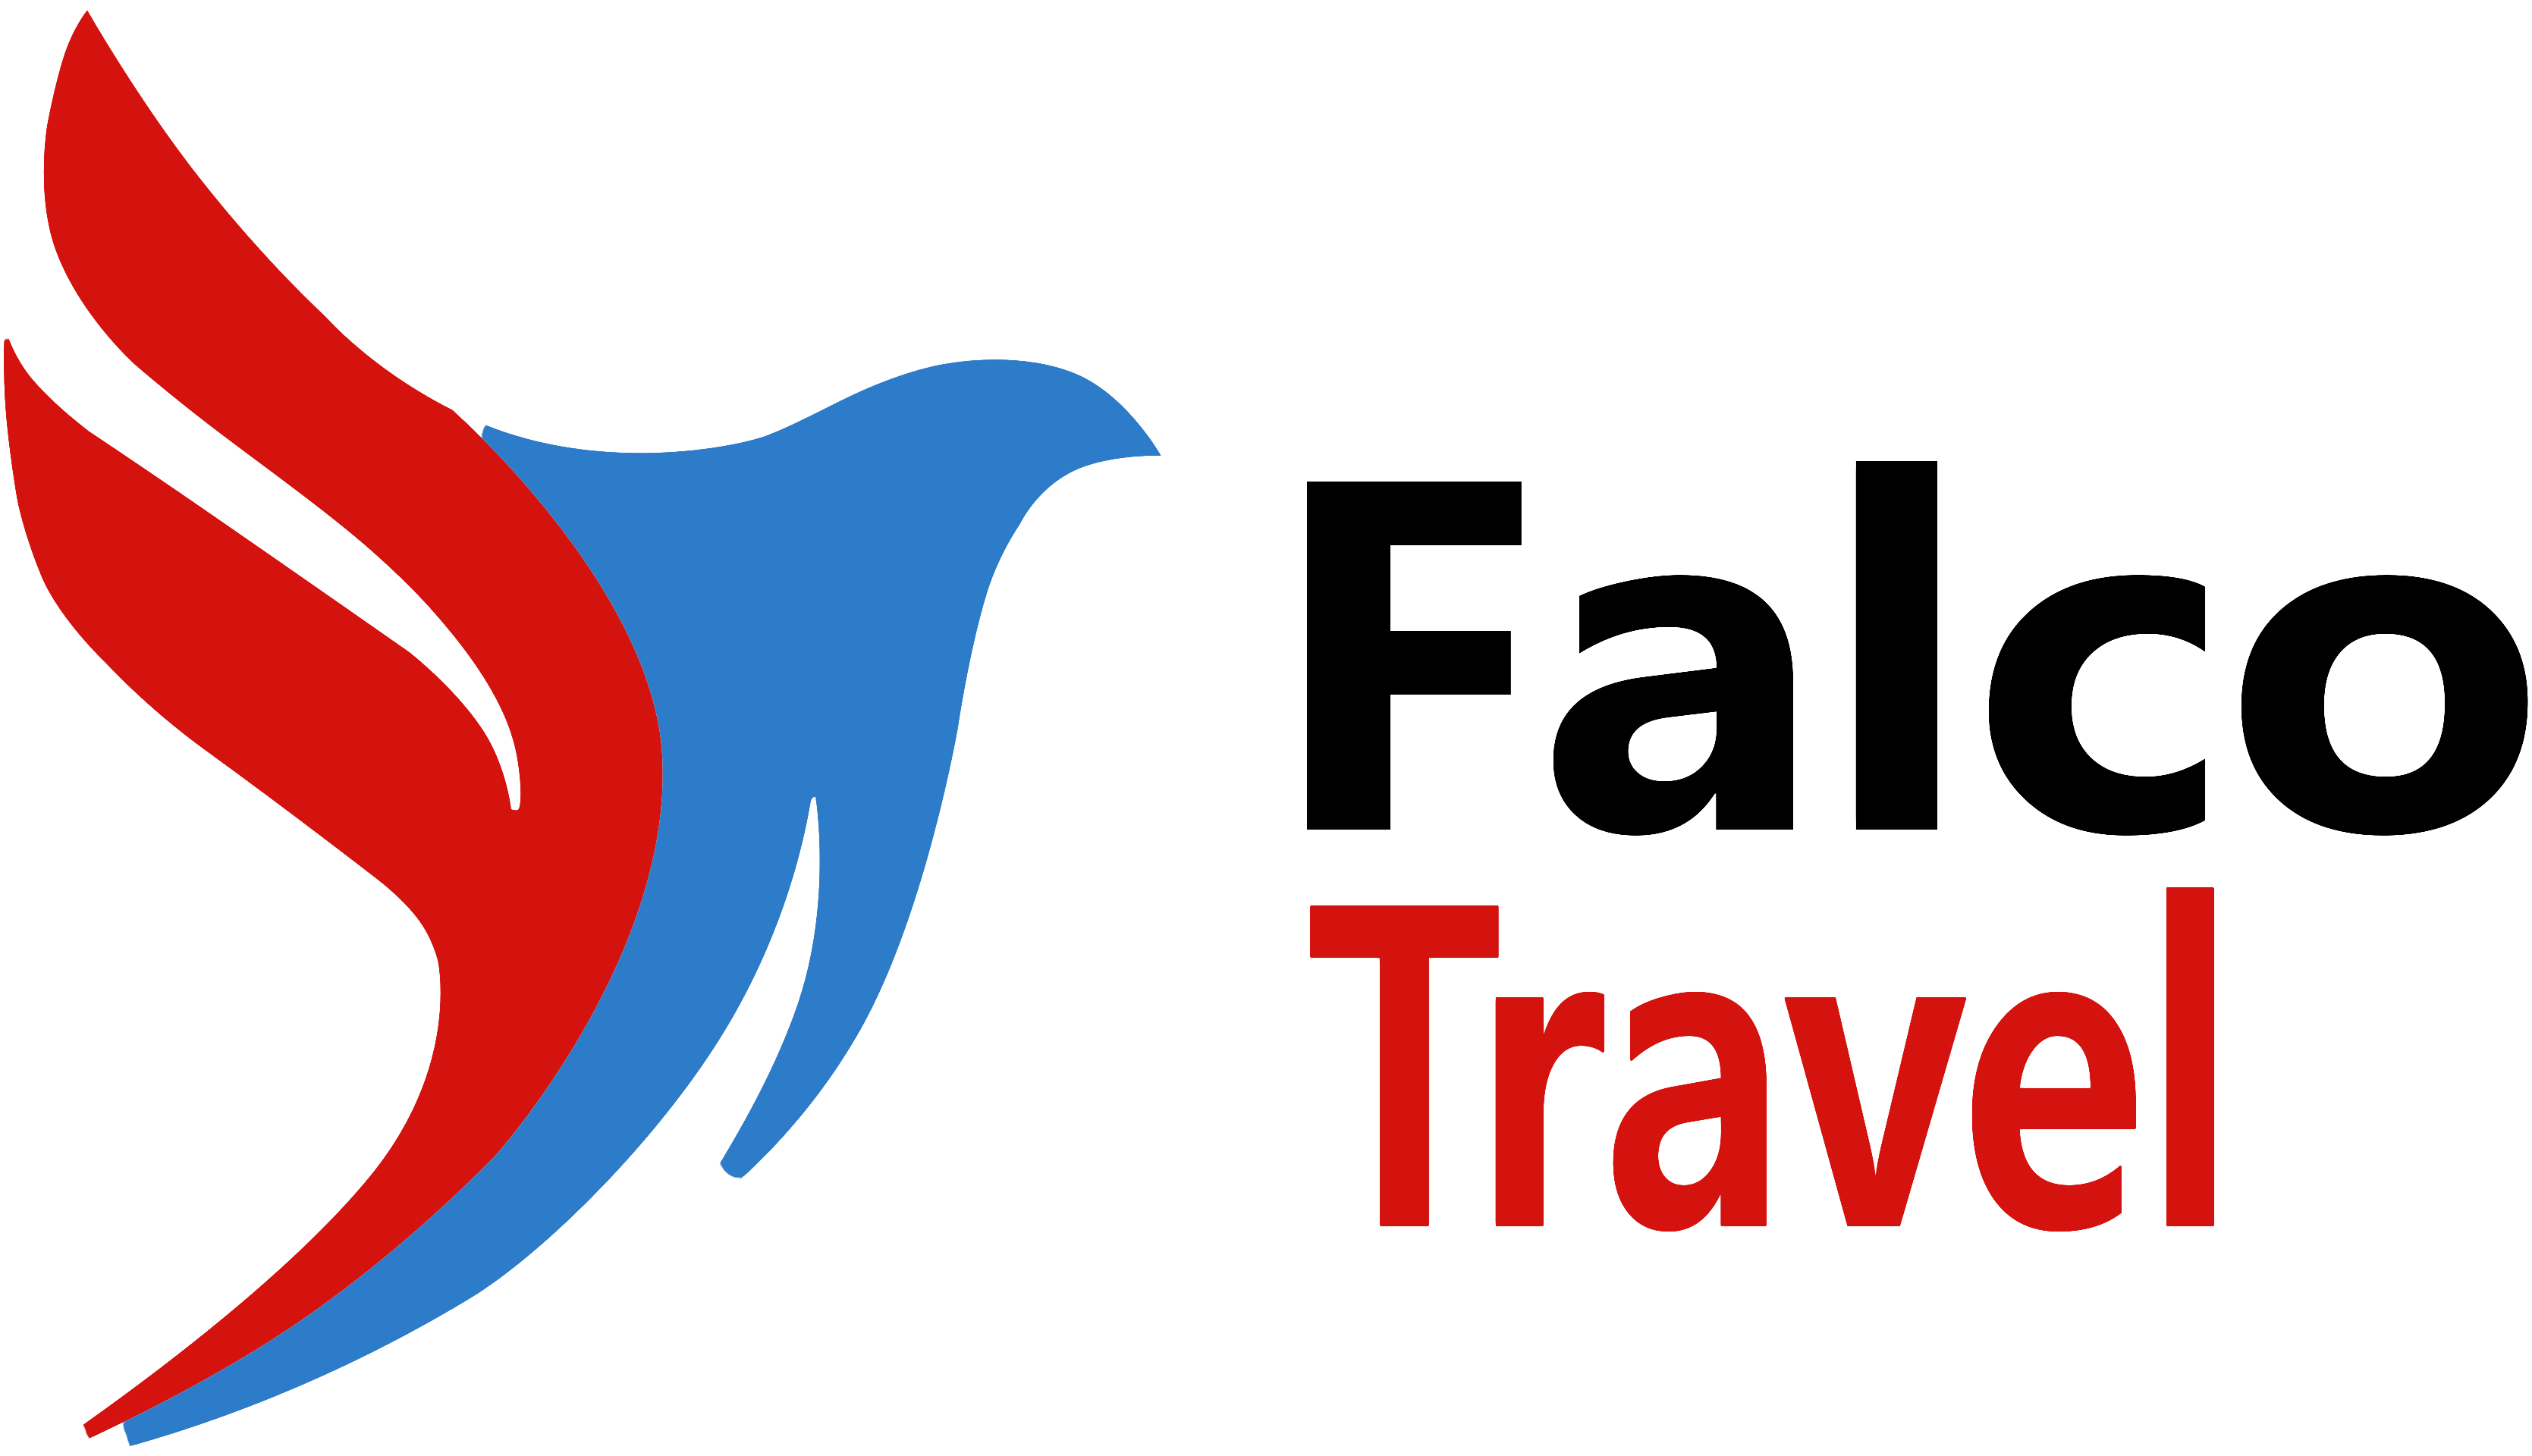 Falco travel